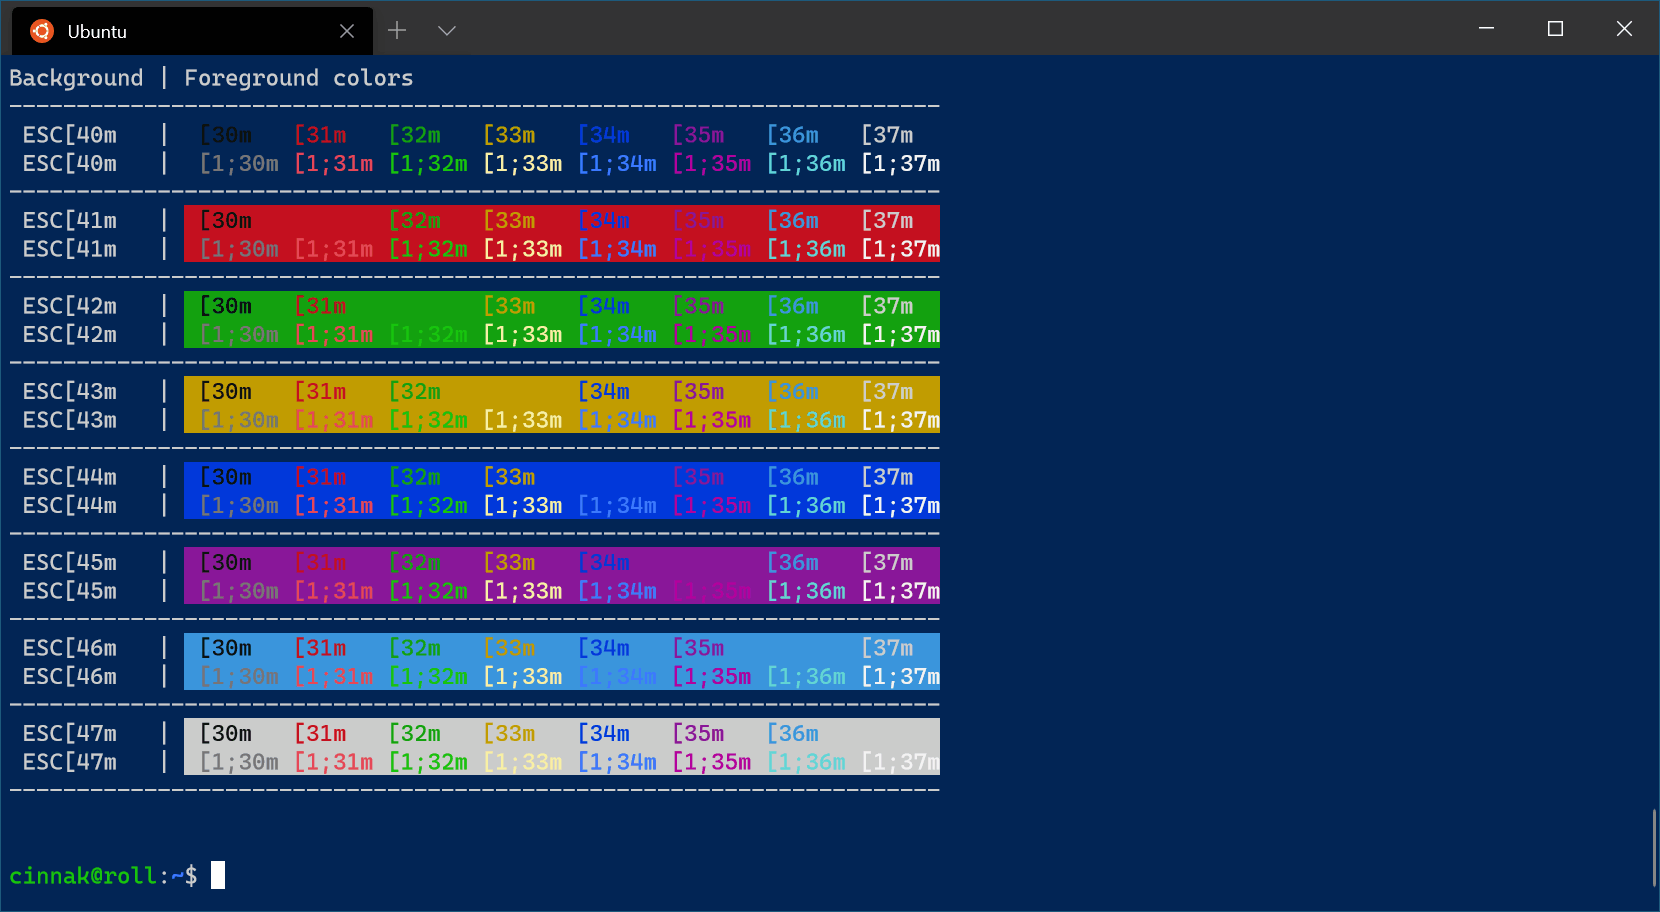 Campbell PowerShell color scheme